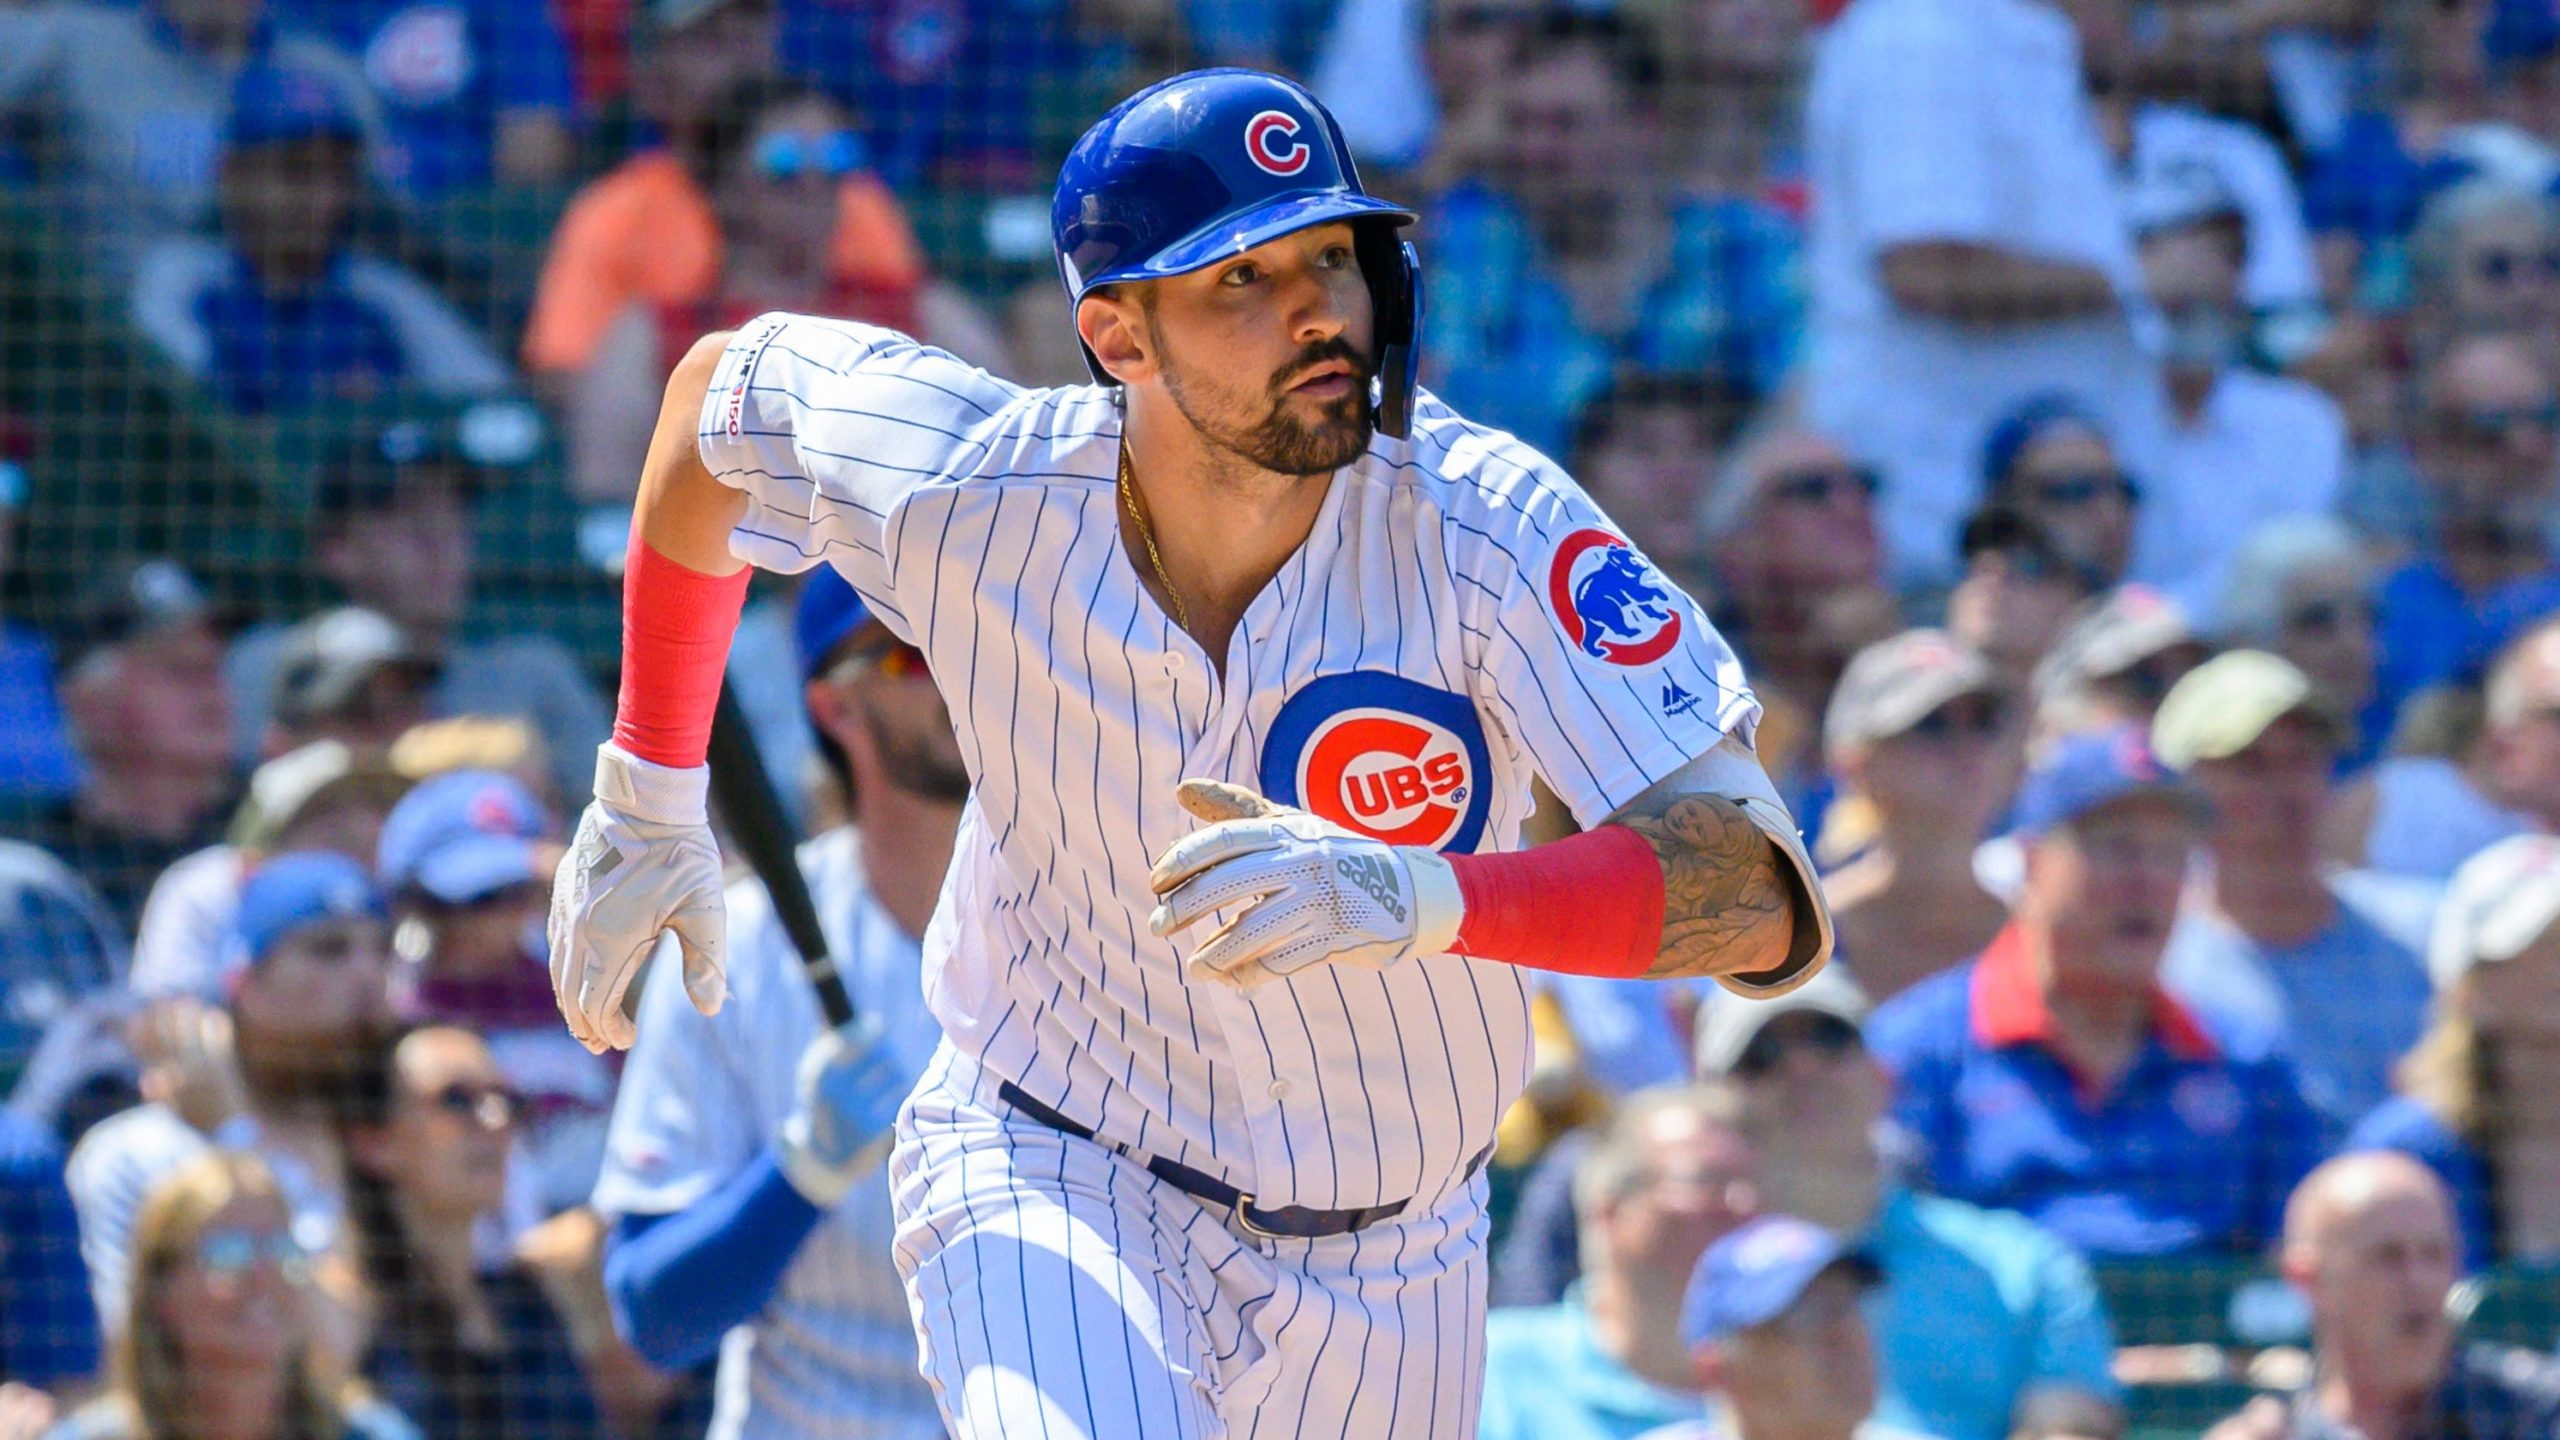 Reports: Reds are in full preparation to sign Nicholas castellanos